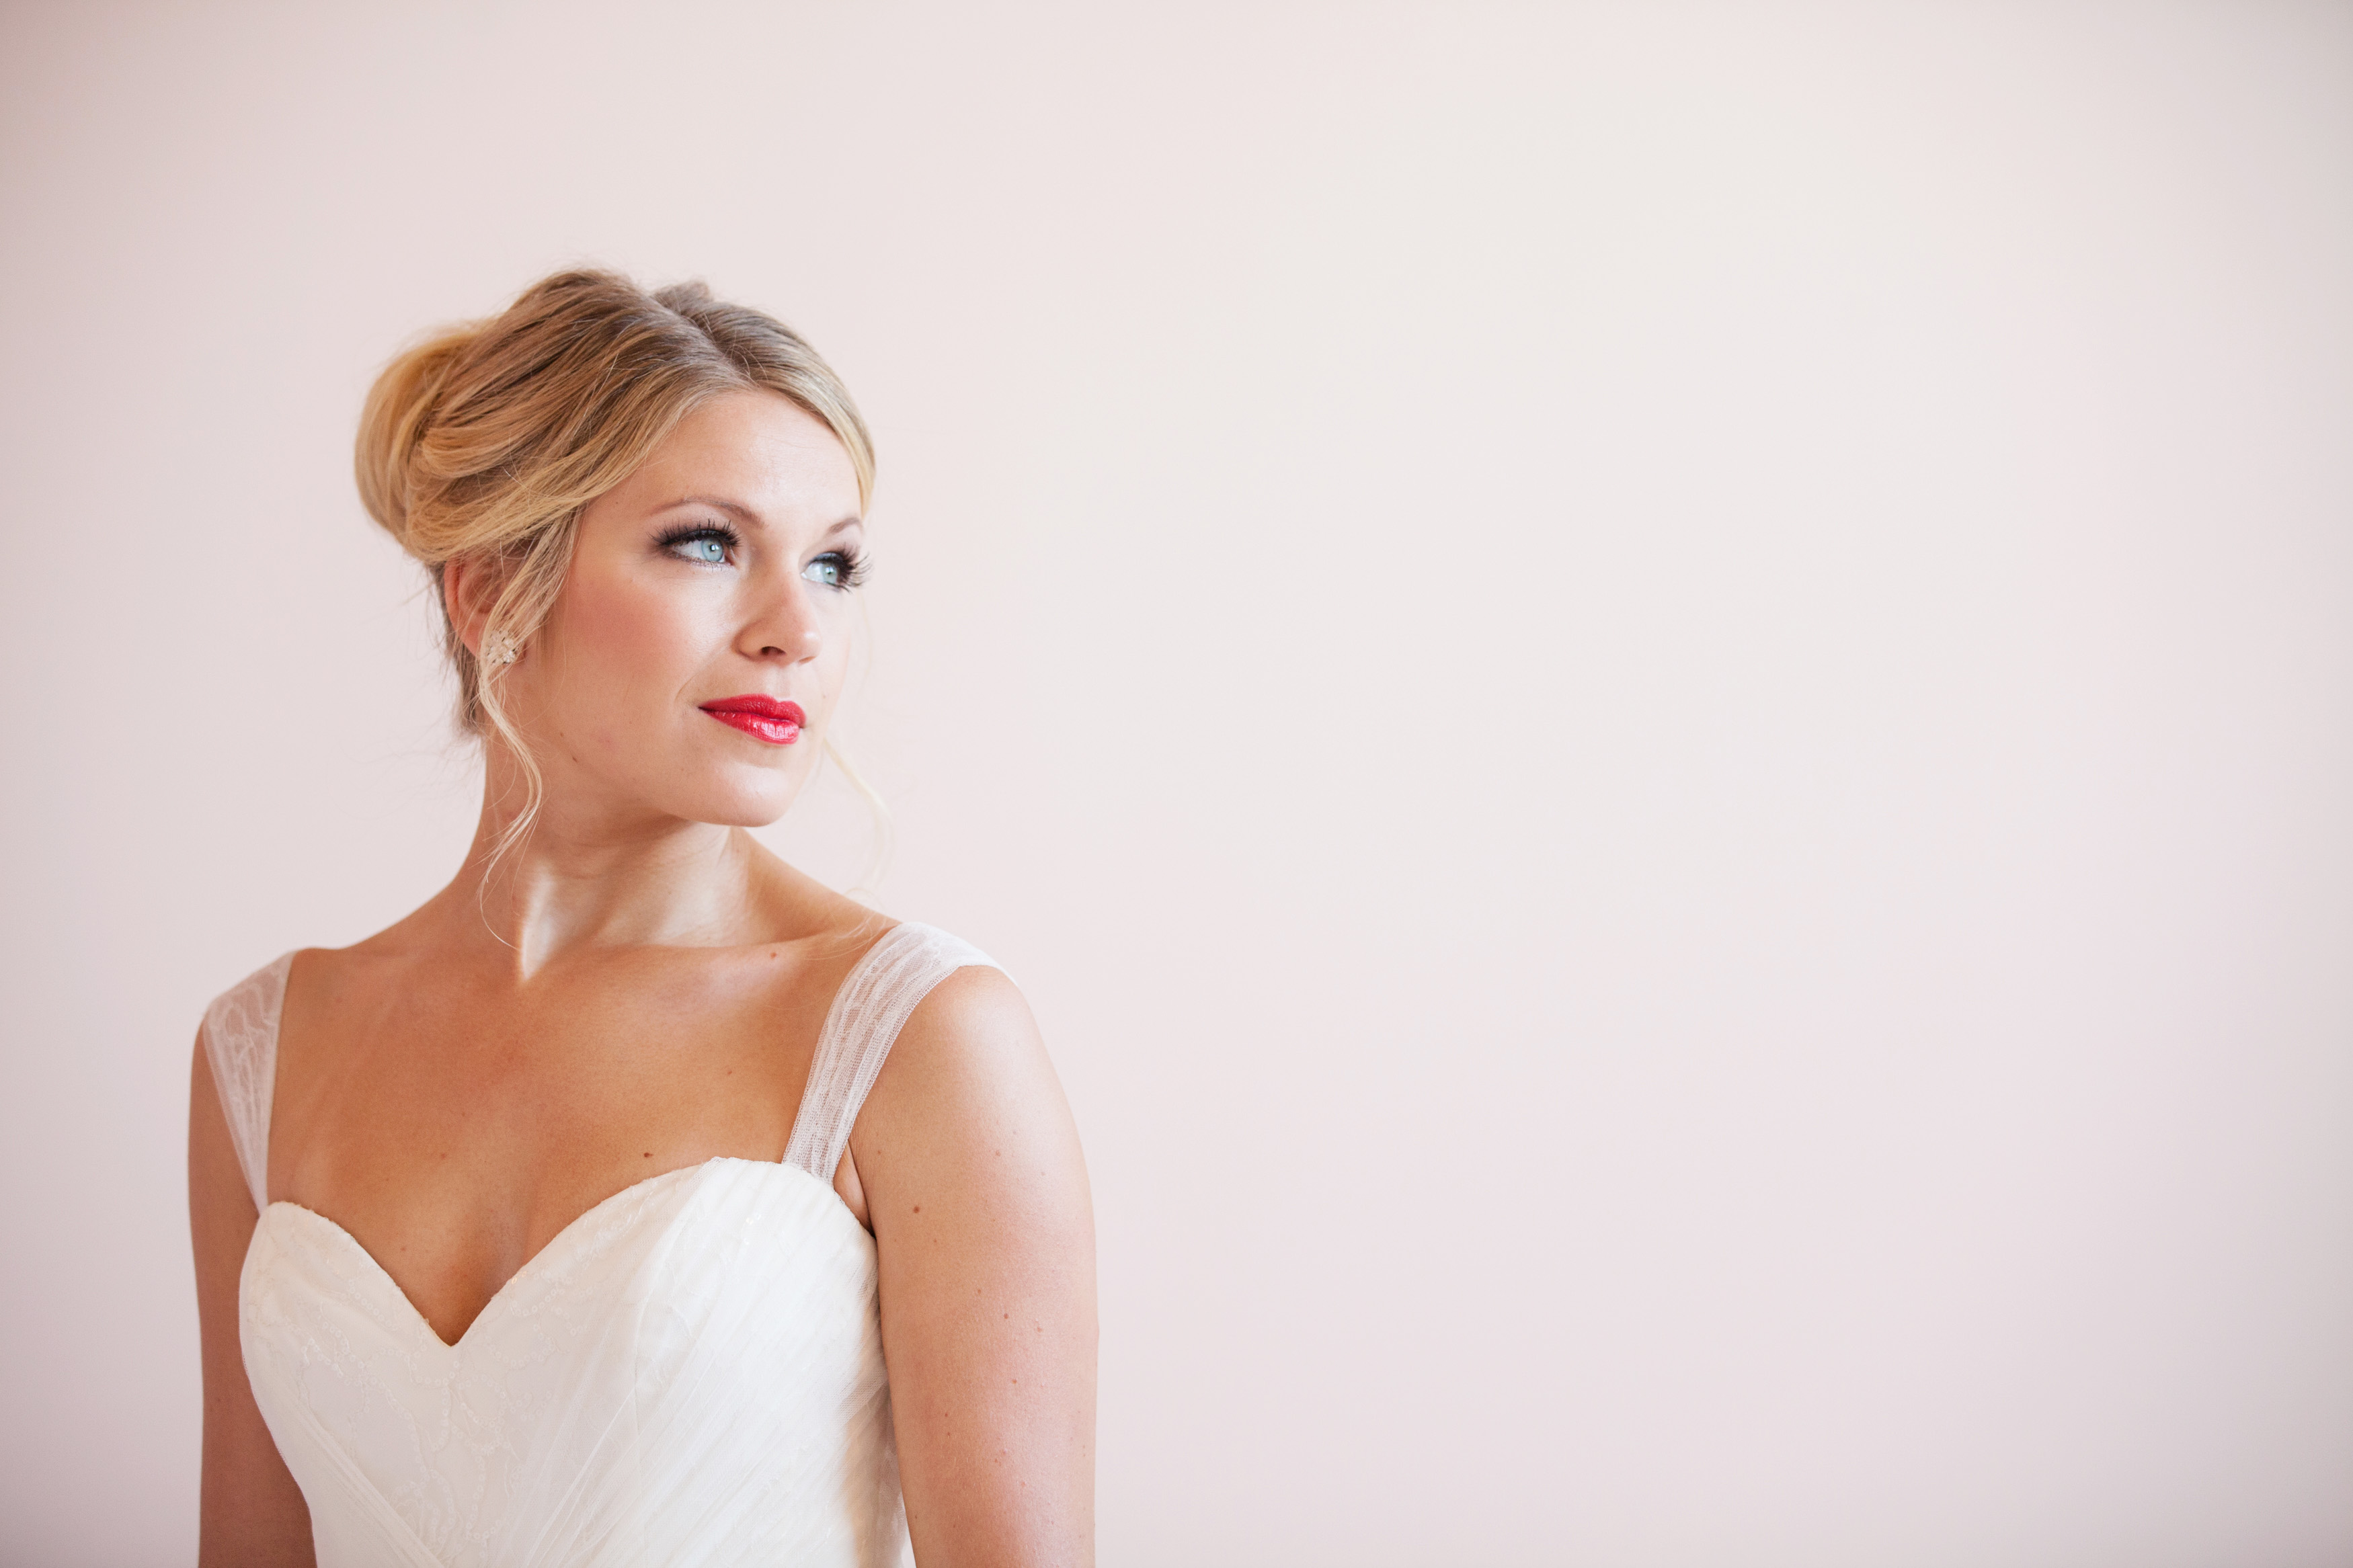 b6273a6c4ebd Annalise Bridal offers a luxurious wedding gown shopping experience to each  and every bride with a unique experience in which our focus is on helping  her ...